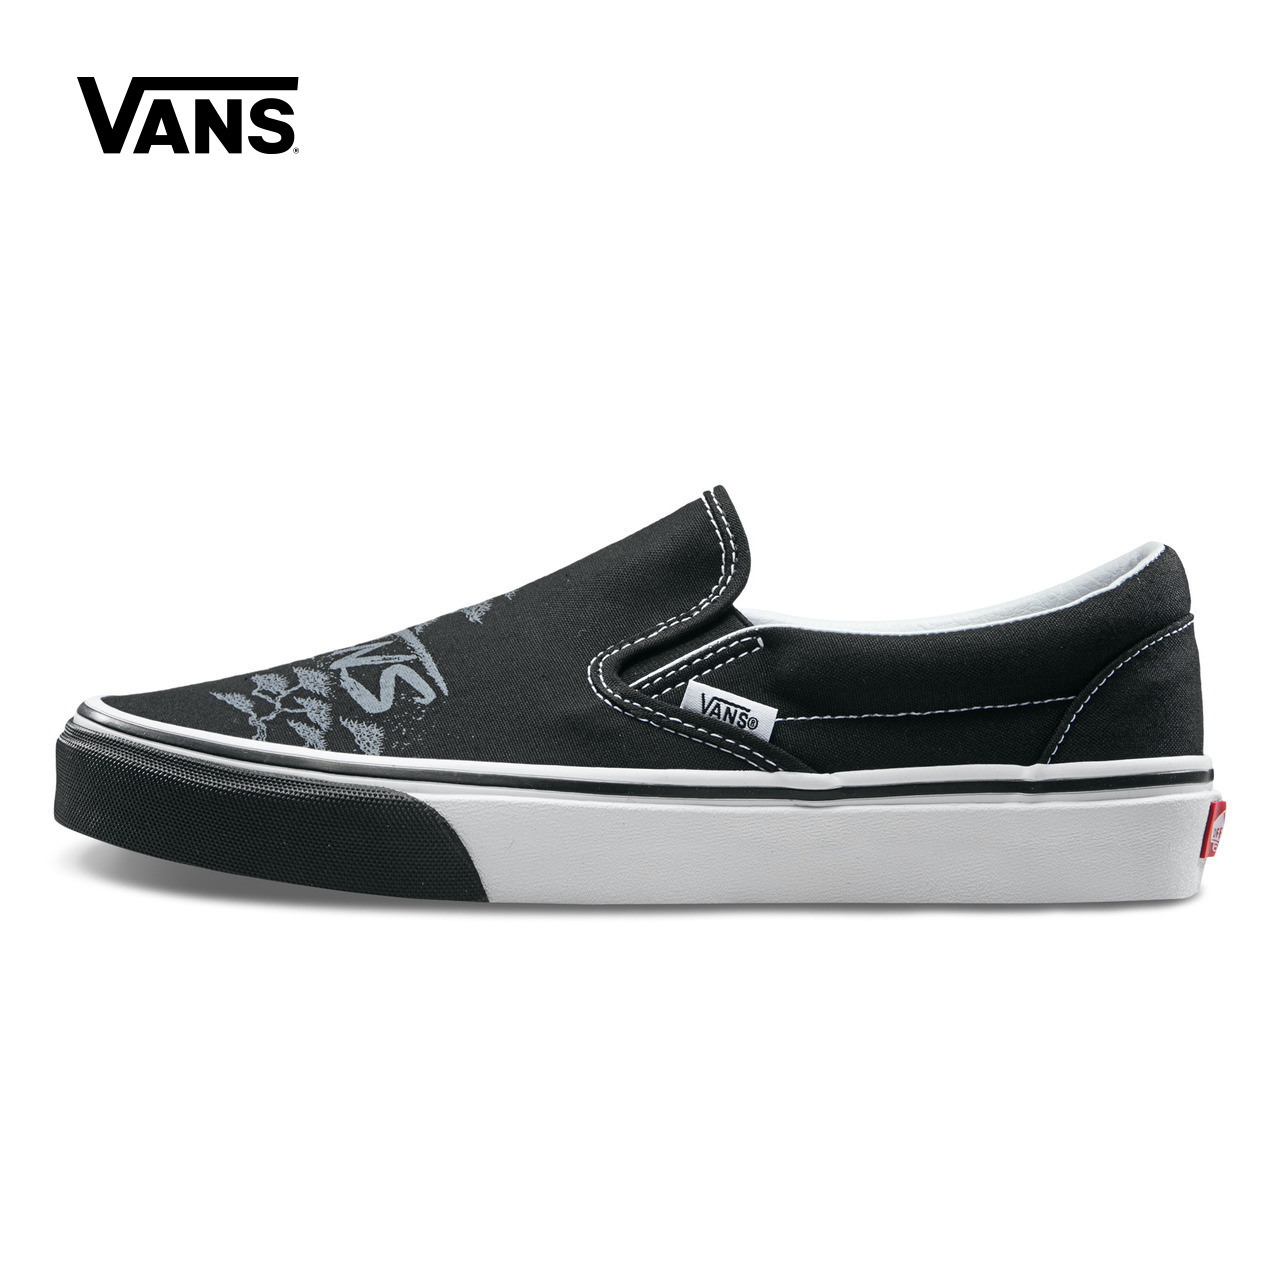 Original Black Vans Sneakers Men Women Classic Slip-On Low-top Skateboarding Shoes Canvas Comfortable Vans Shoes VN0A38F7PUQ original vans shoes white color unisex women men low top skateboarding shoes sports shoes slip on list canvas sneakers